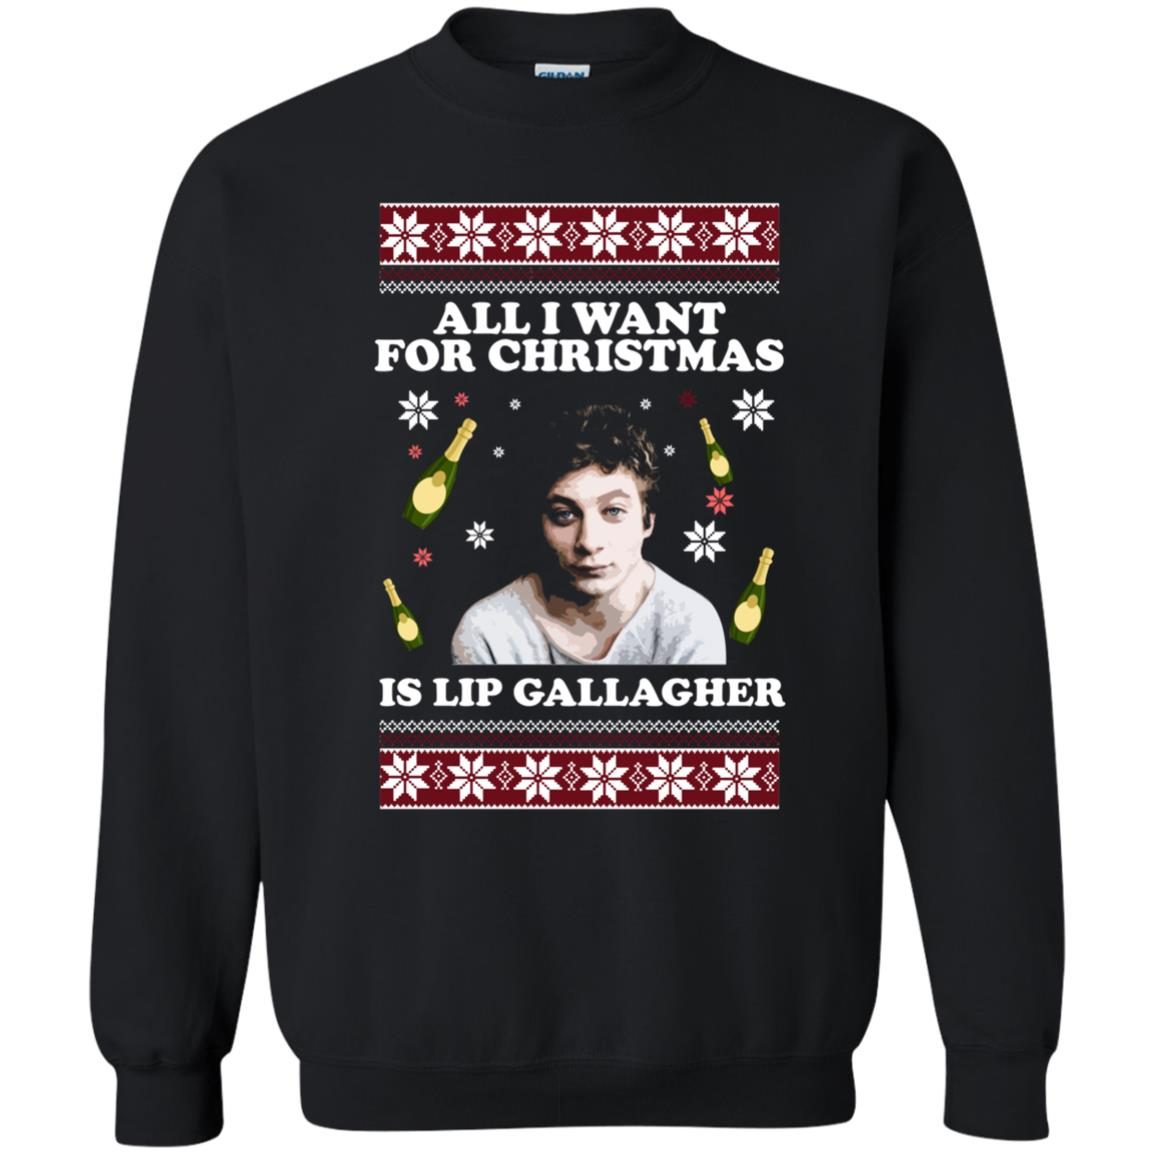 image 3031 - All I Want For Christmas Is Lip Gallagher Ugly Sweater,  Christmas Sweatshirt